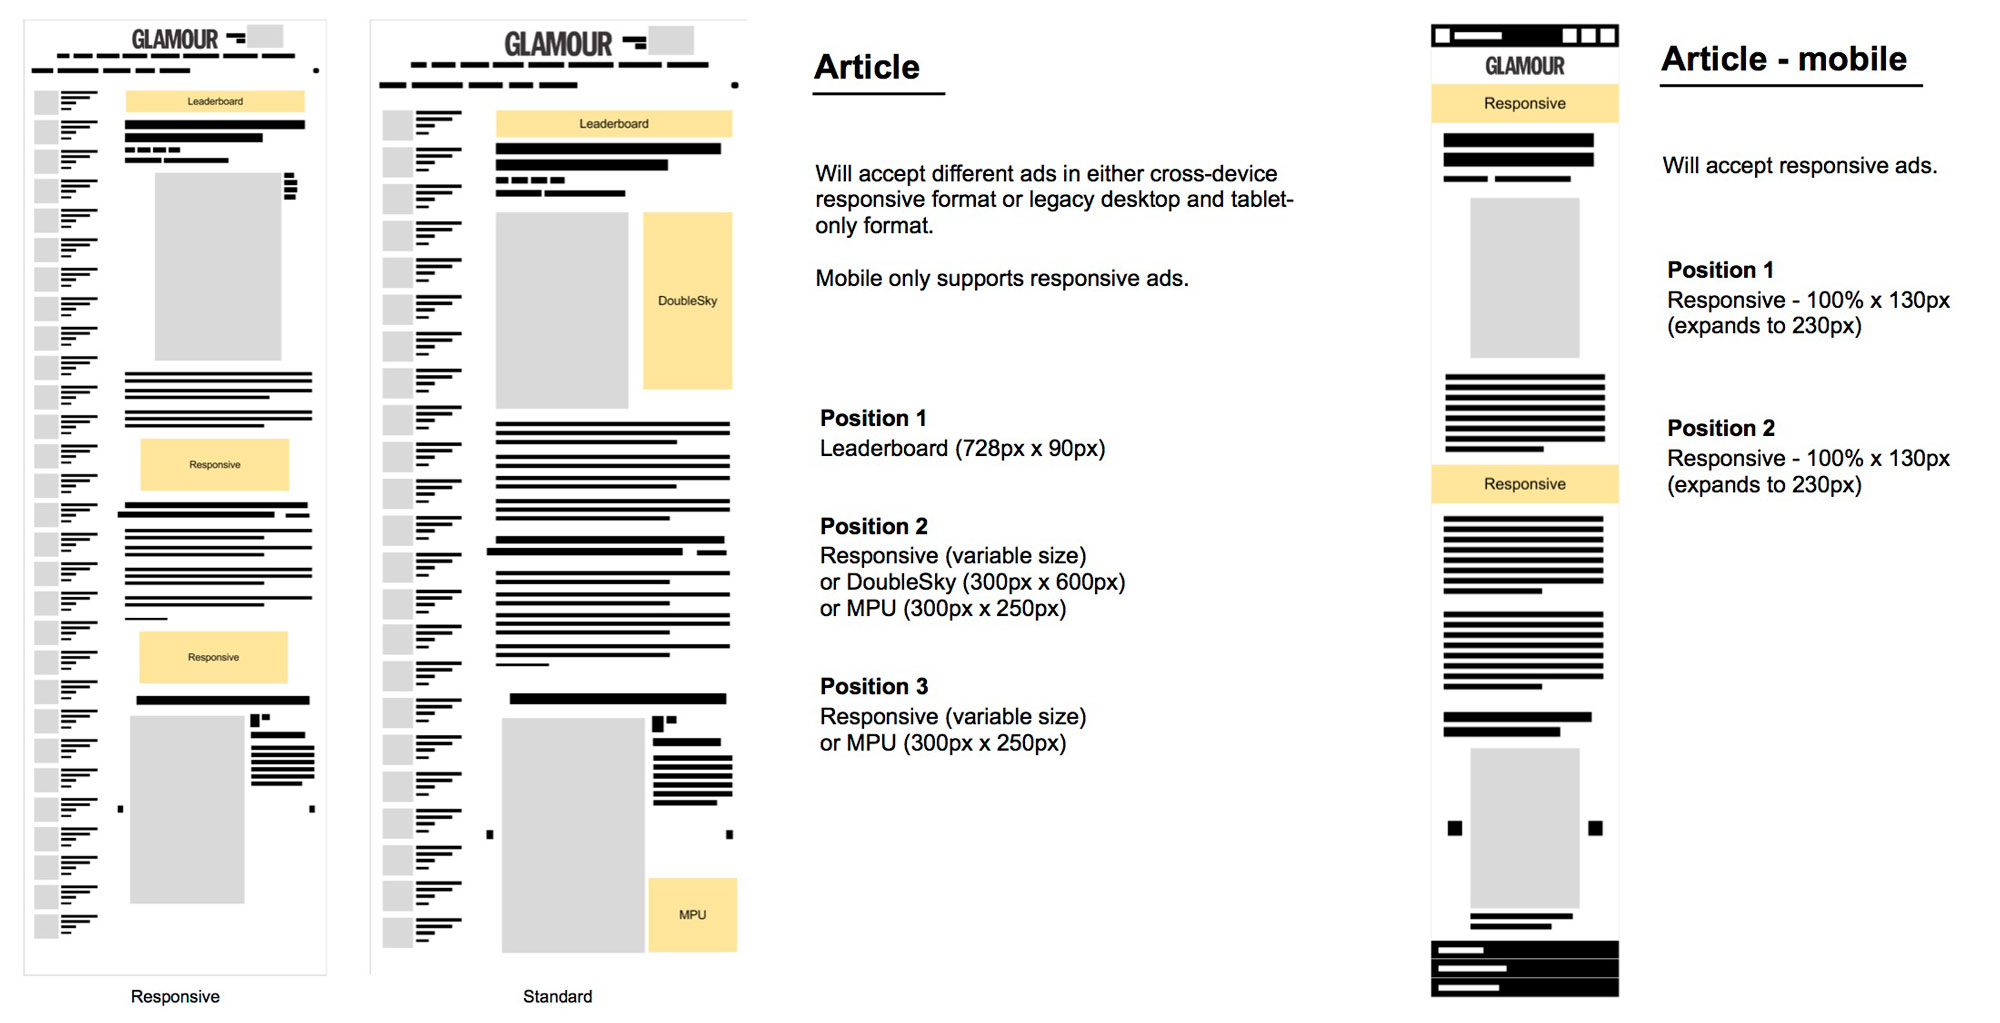 Advertising specifications for Glamour Articles on Desktop and Mobile